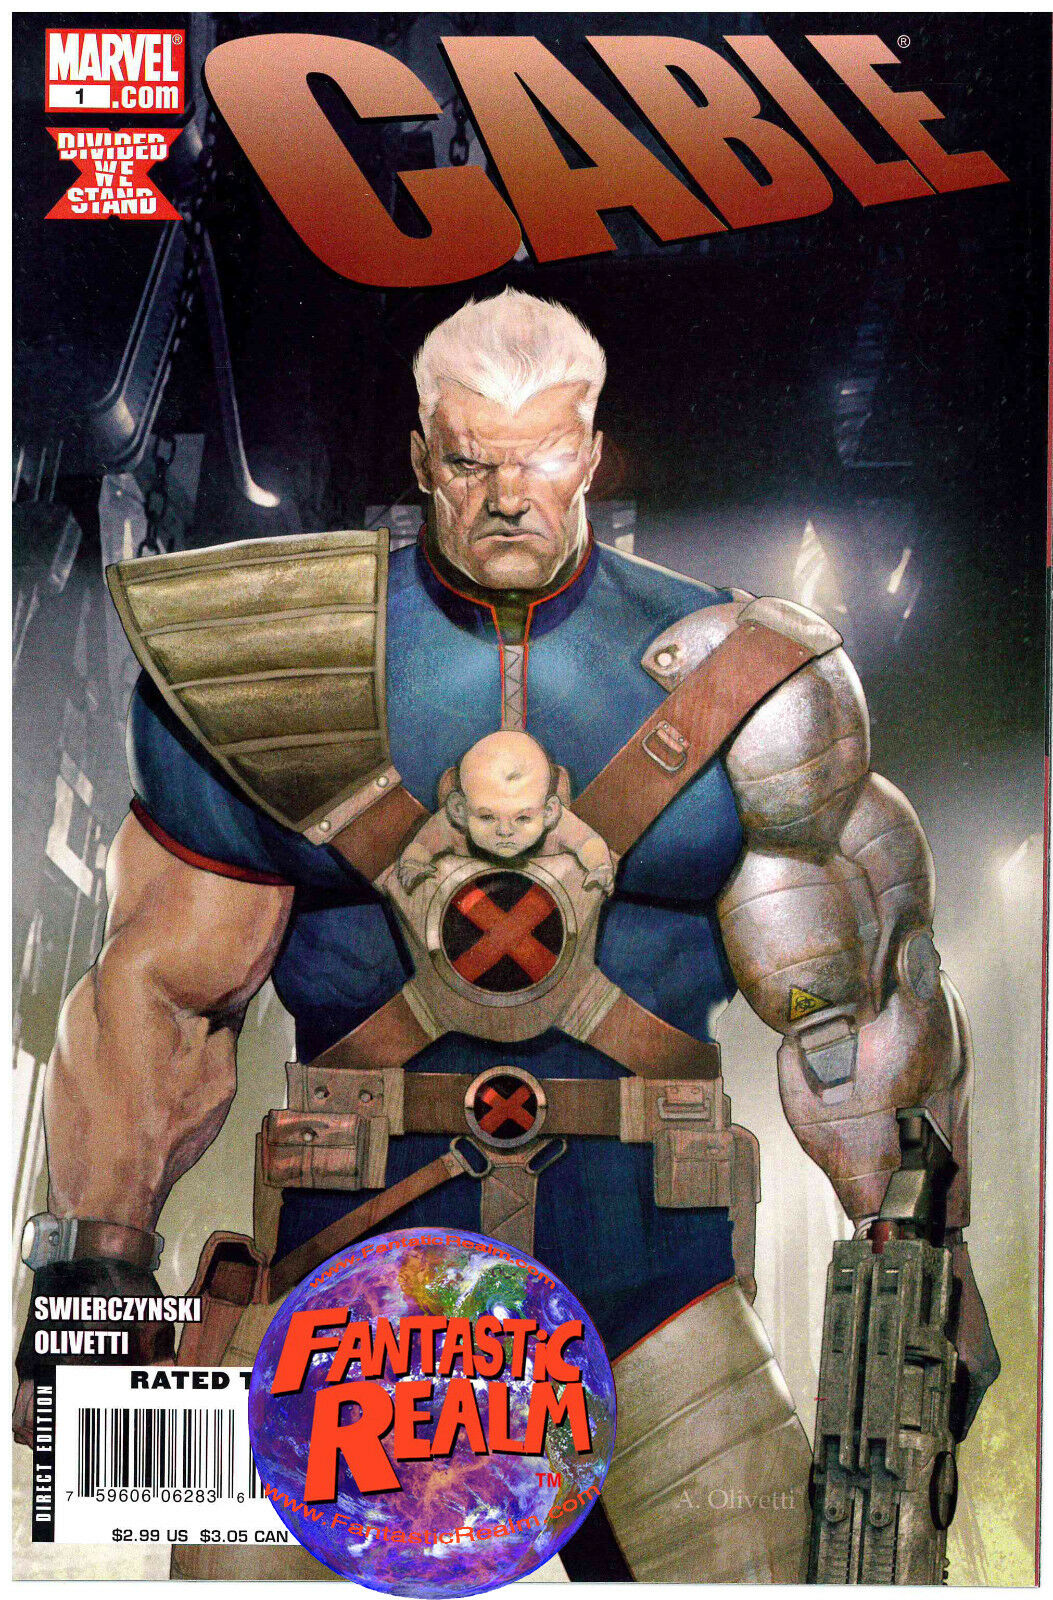 CABLE #1 & 2 ARIEL OLIVETTI COVERS MARVEL COMICS